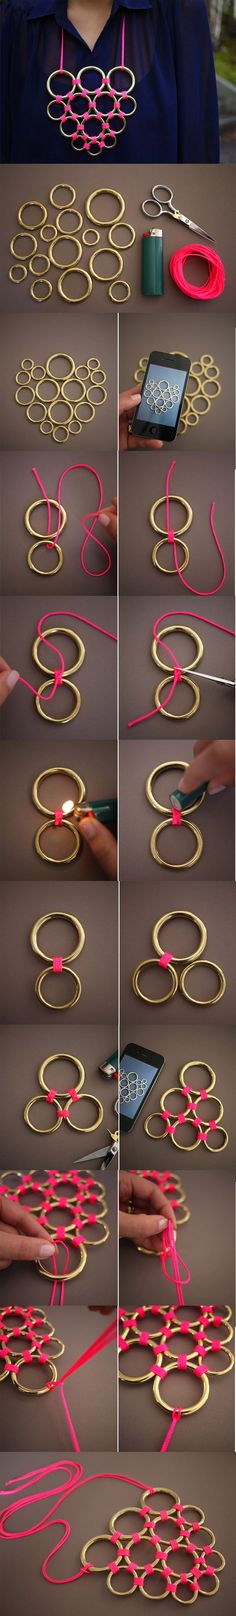 5 DIY – Necklace Ideas